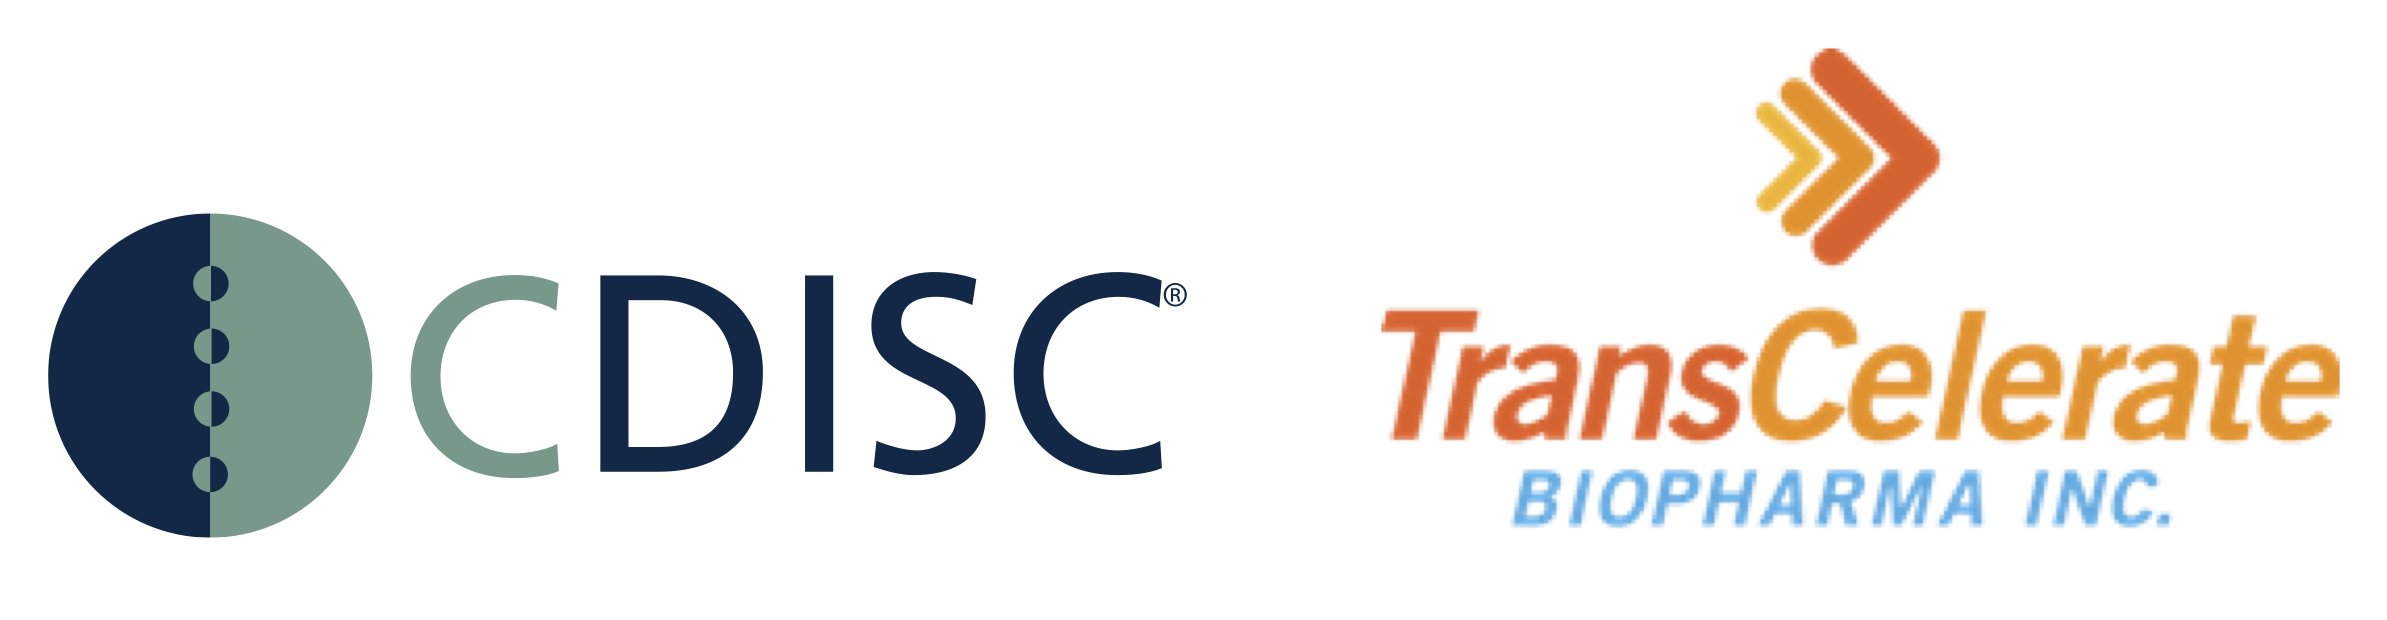 CDISC and TransCelerate Announce New Standard for Breast Cancer to ...